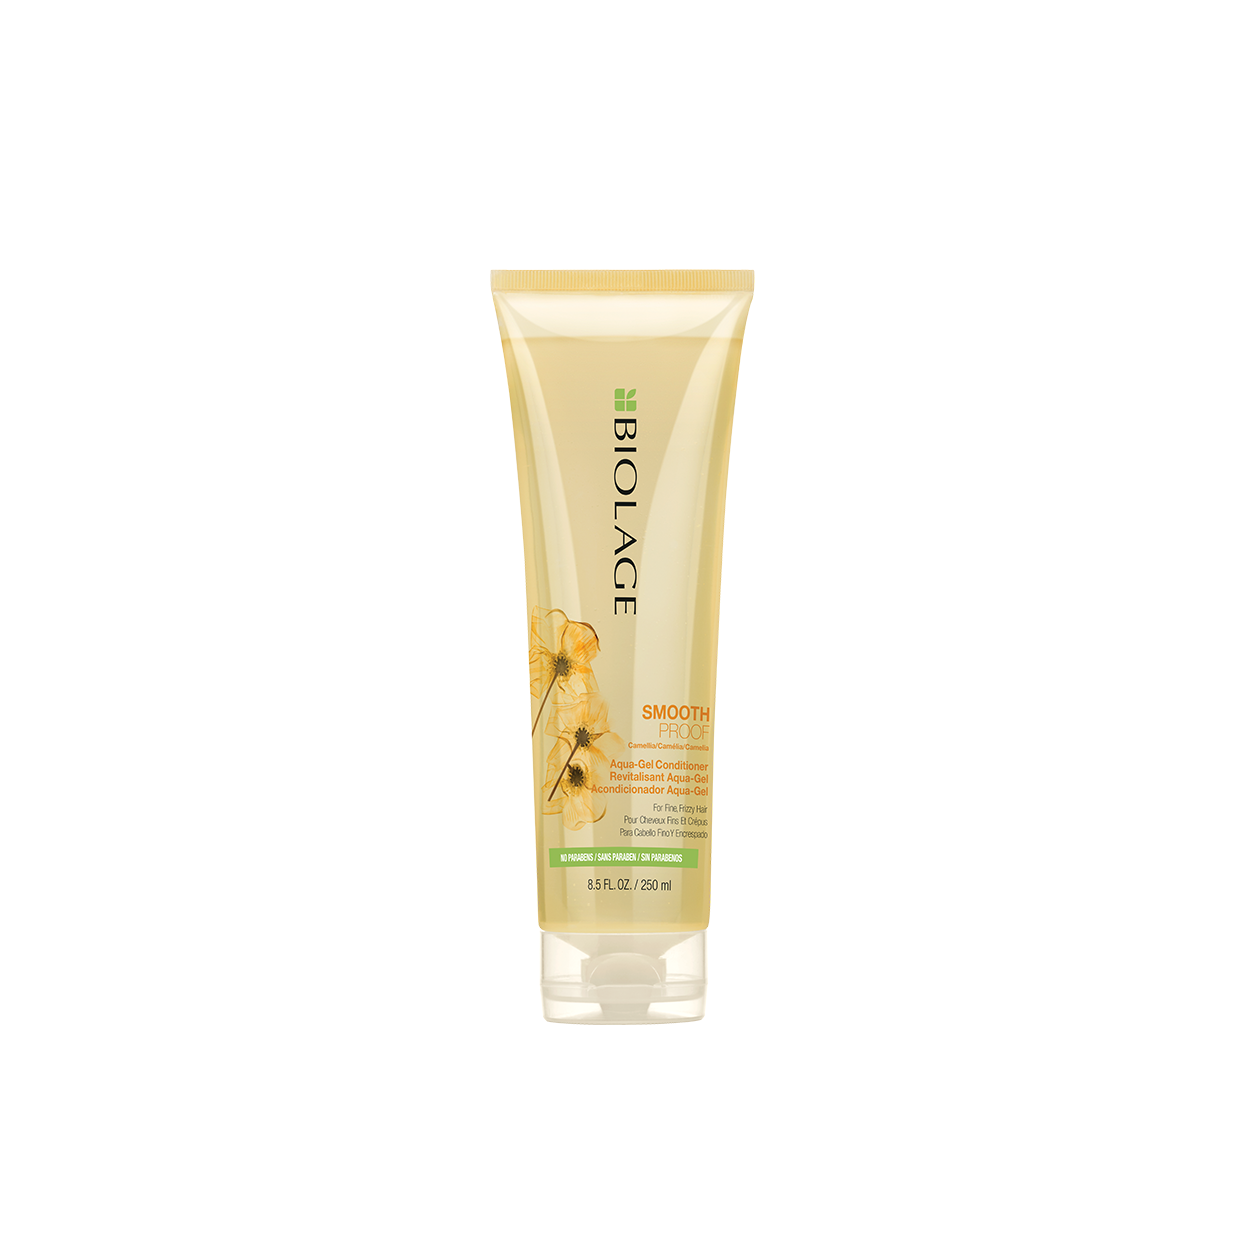 Biolage SmoothProof AquaGelee Hair Conditioner for Frizzy Hair